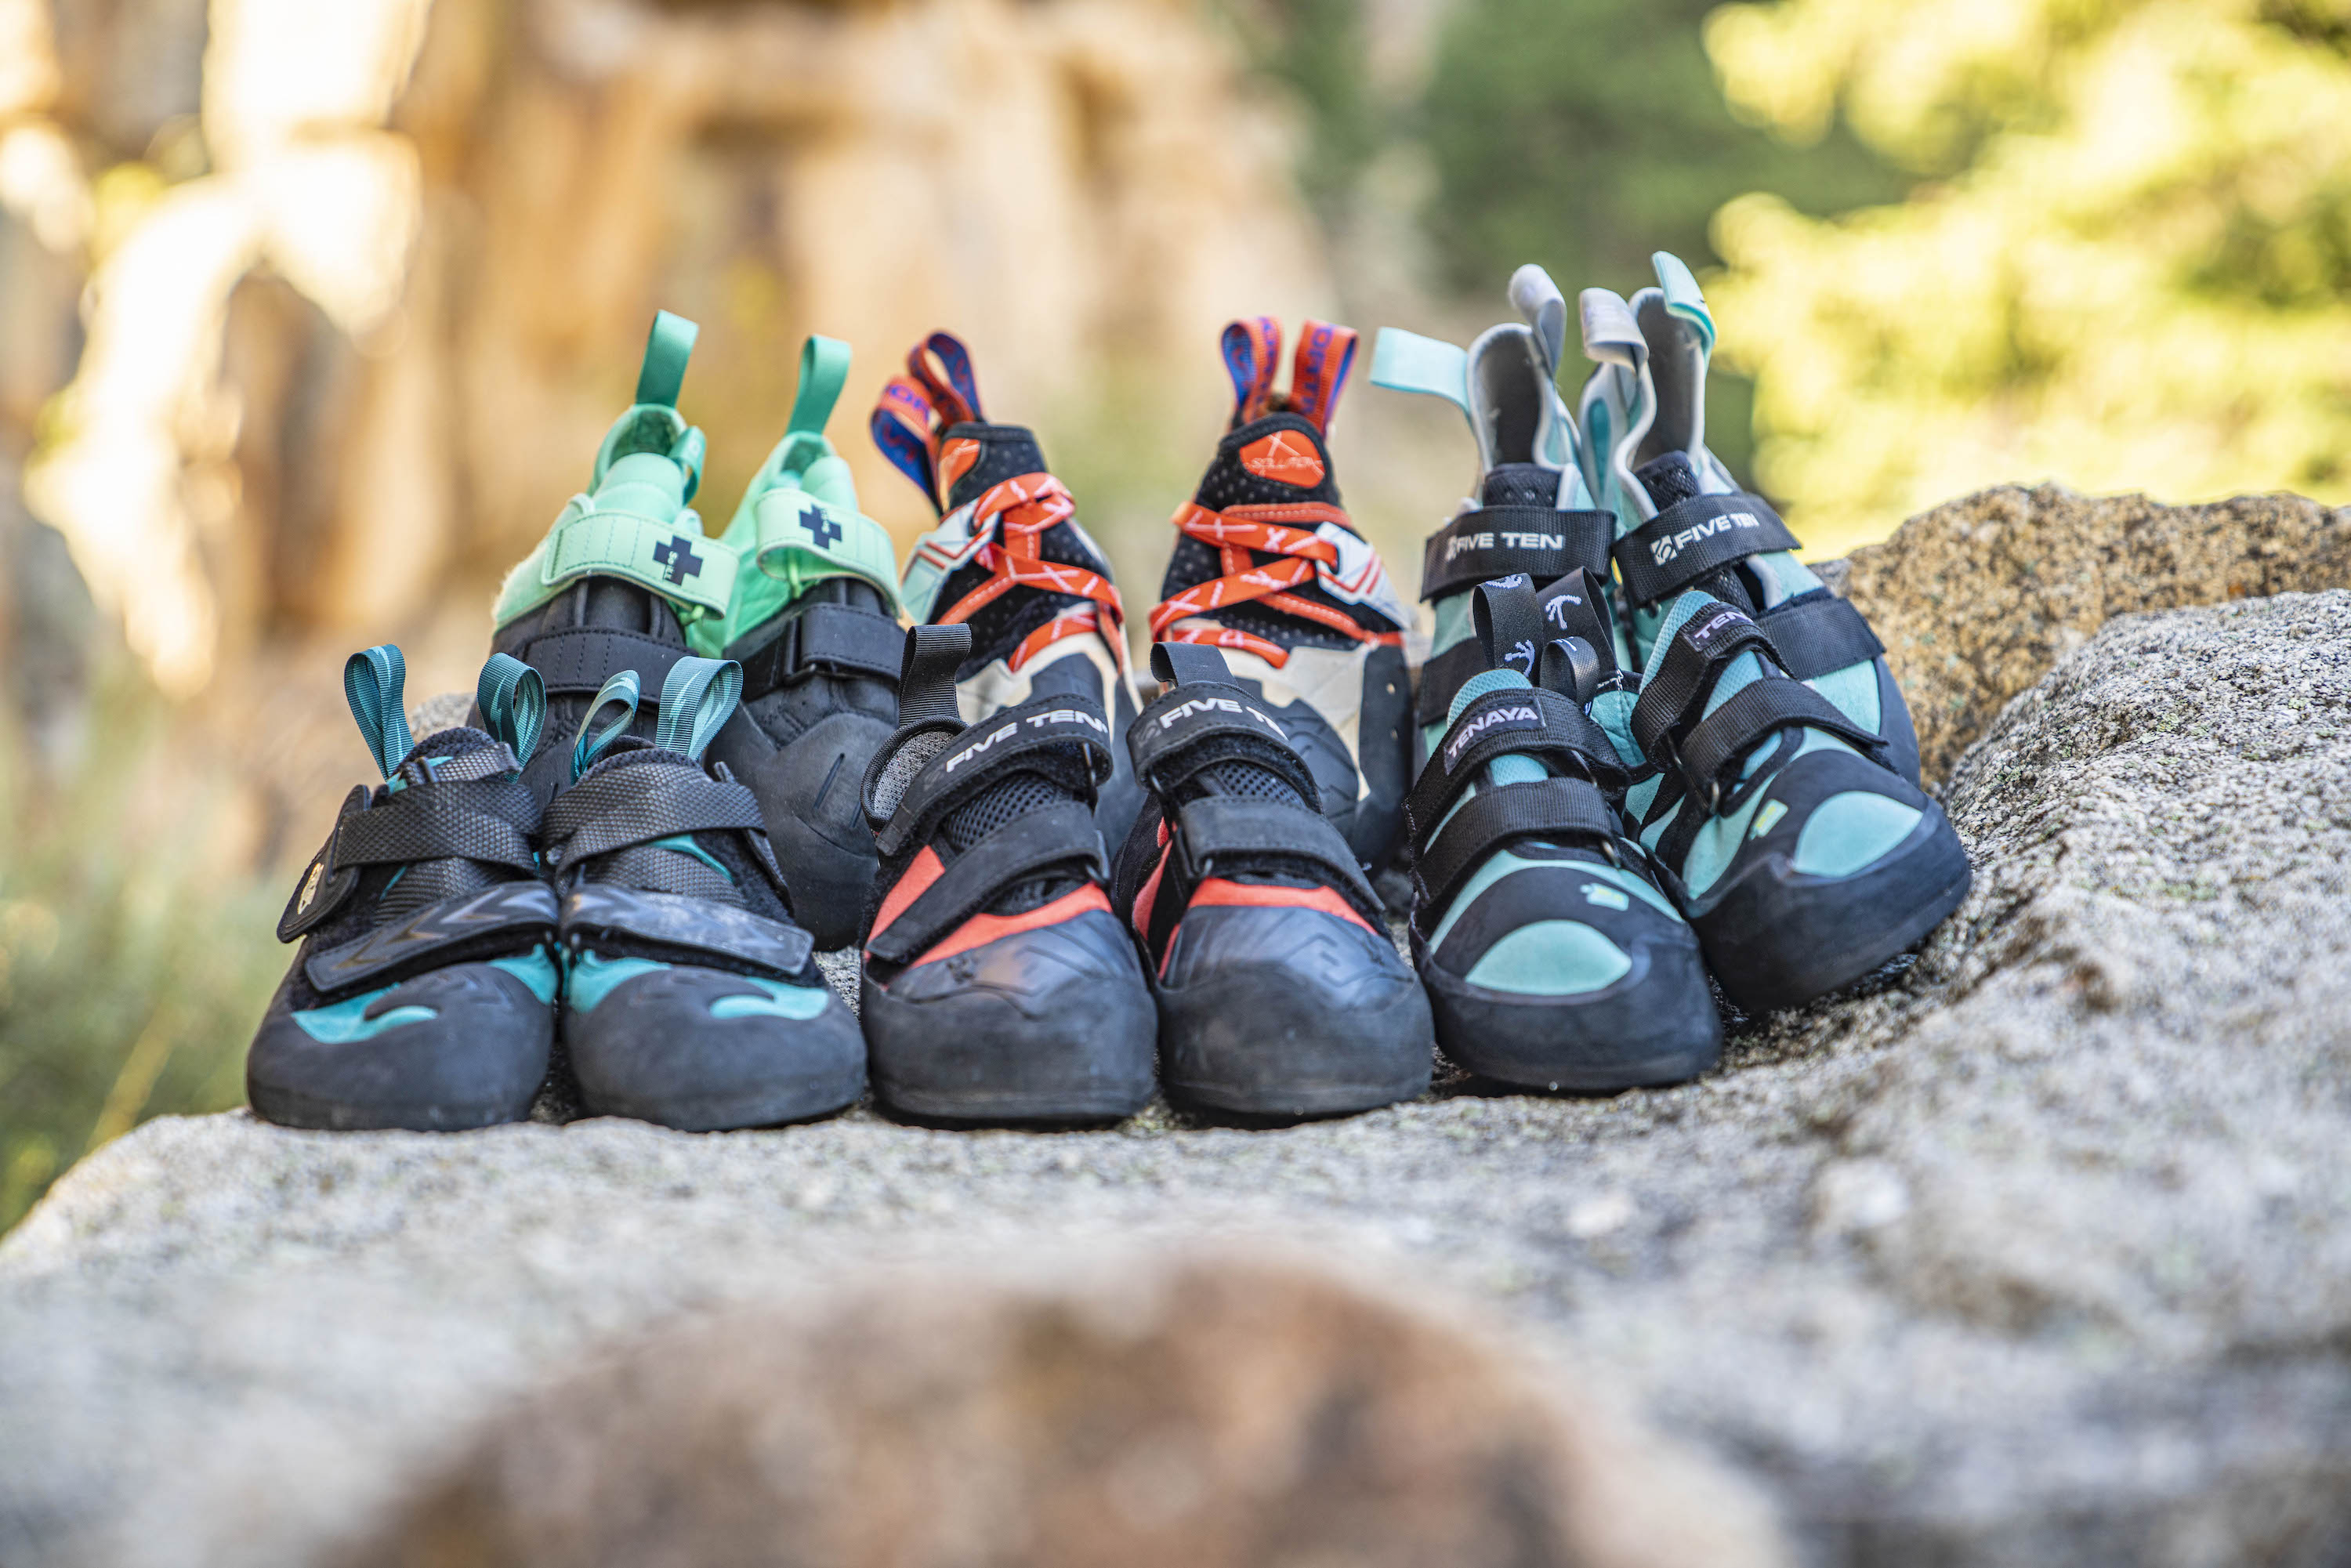 The Best Women's Climbing Shoes of 2020